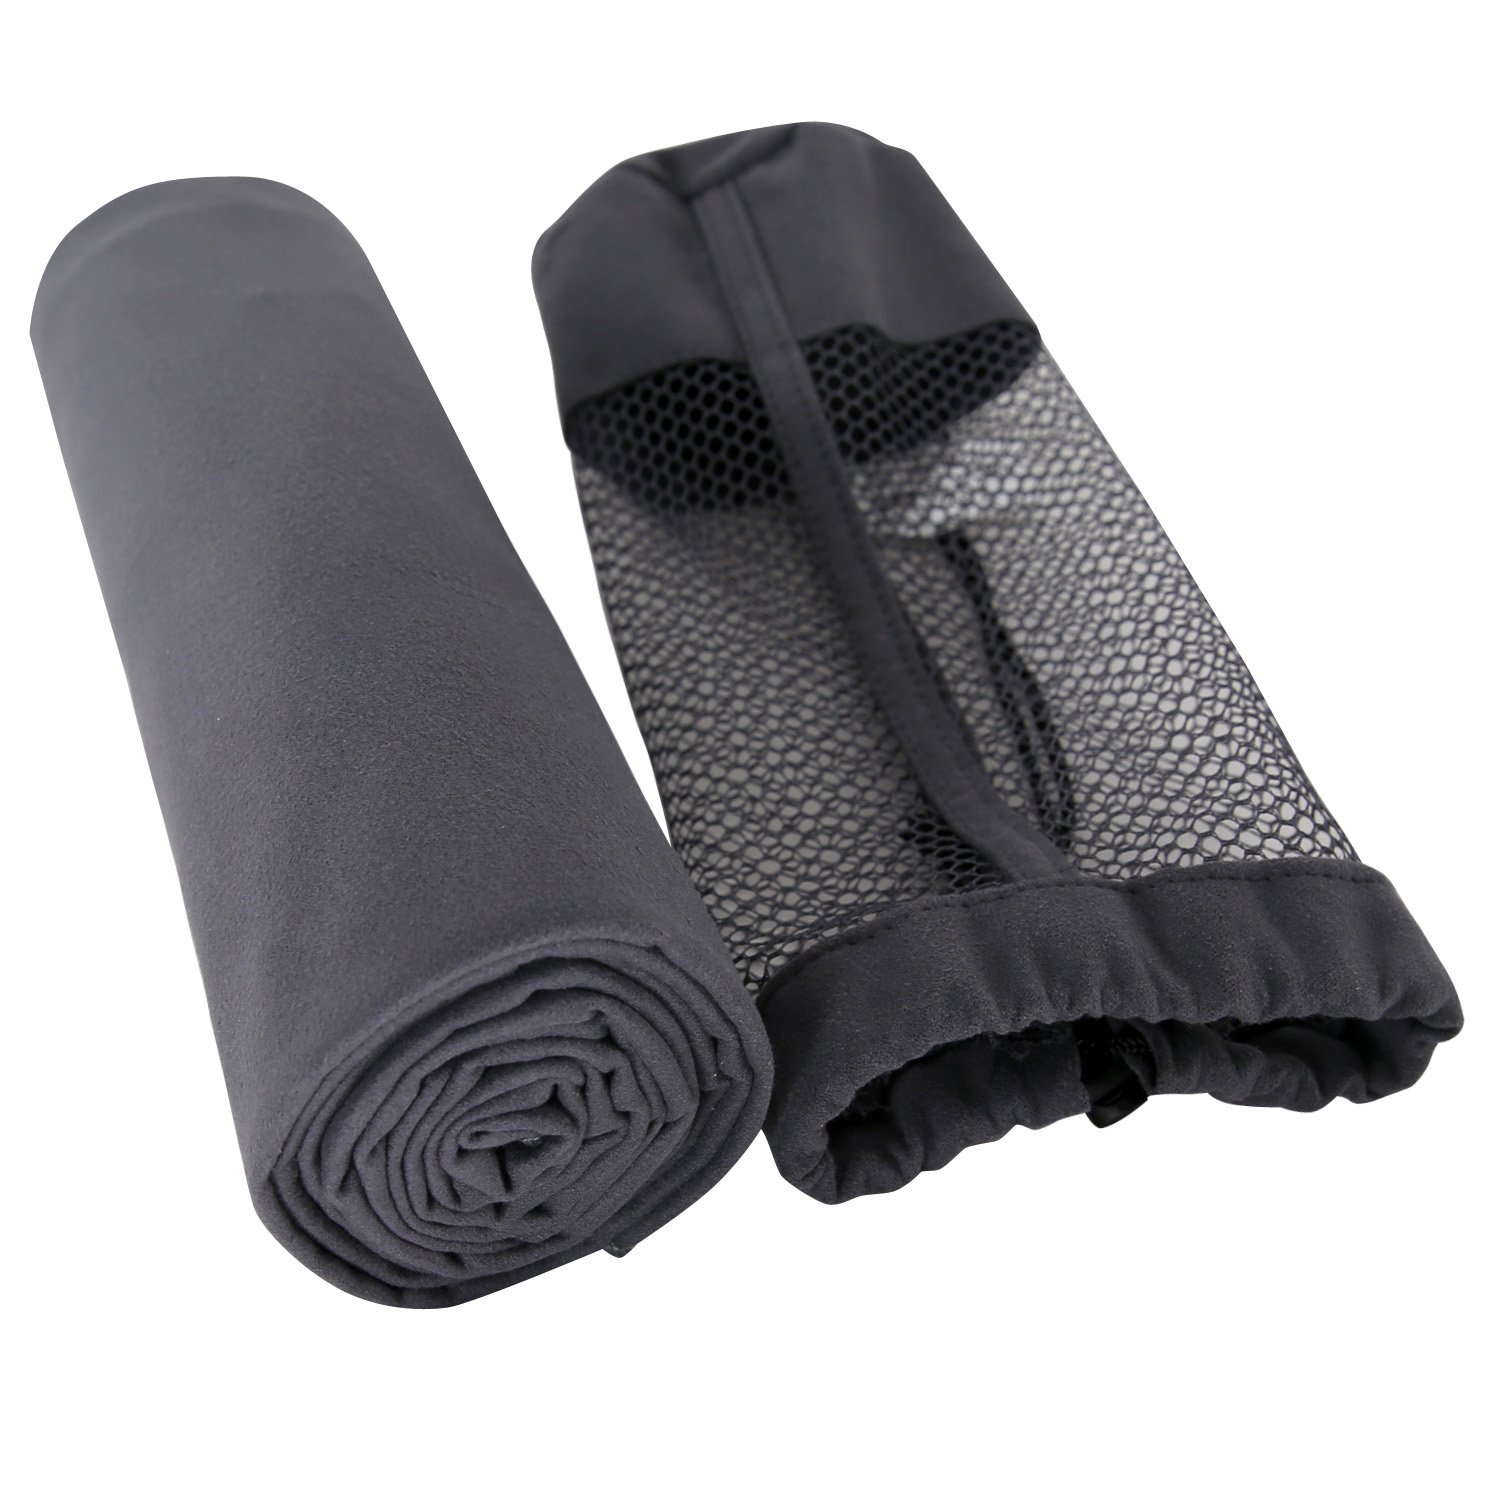 Deconovo Multi-Purpose Microfiber Towel Ultra Compact Super Absorbent and Fast Drying Sports Towel Travel Towel Beach Towel Perfect for Camping, Gym, Swimming, Backpacking.